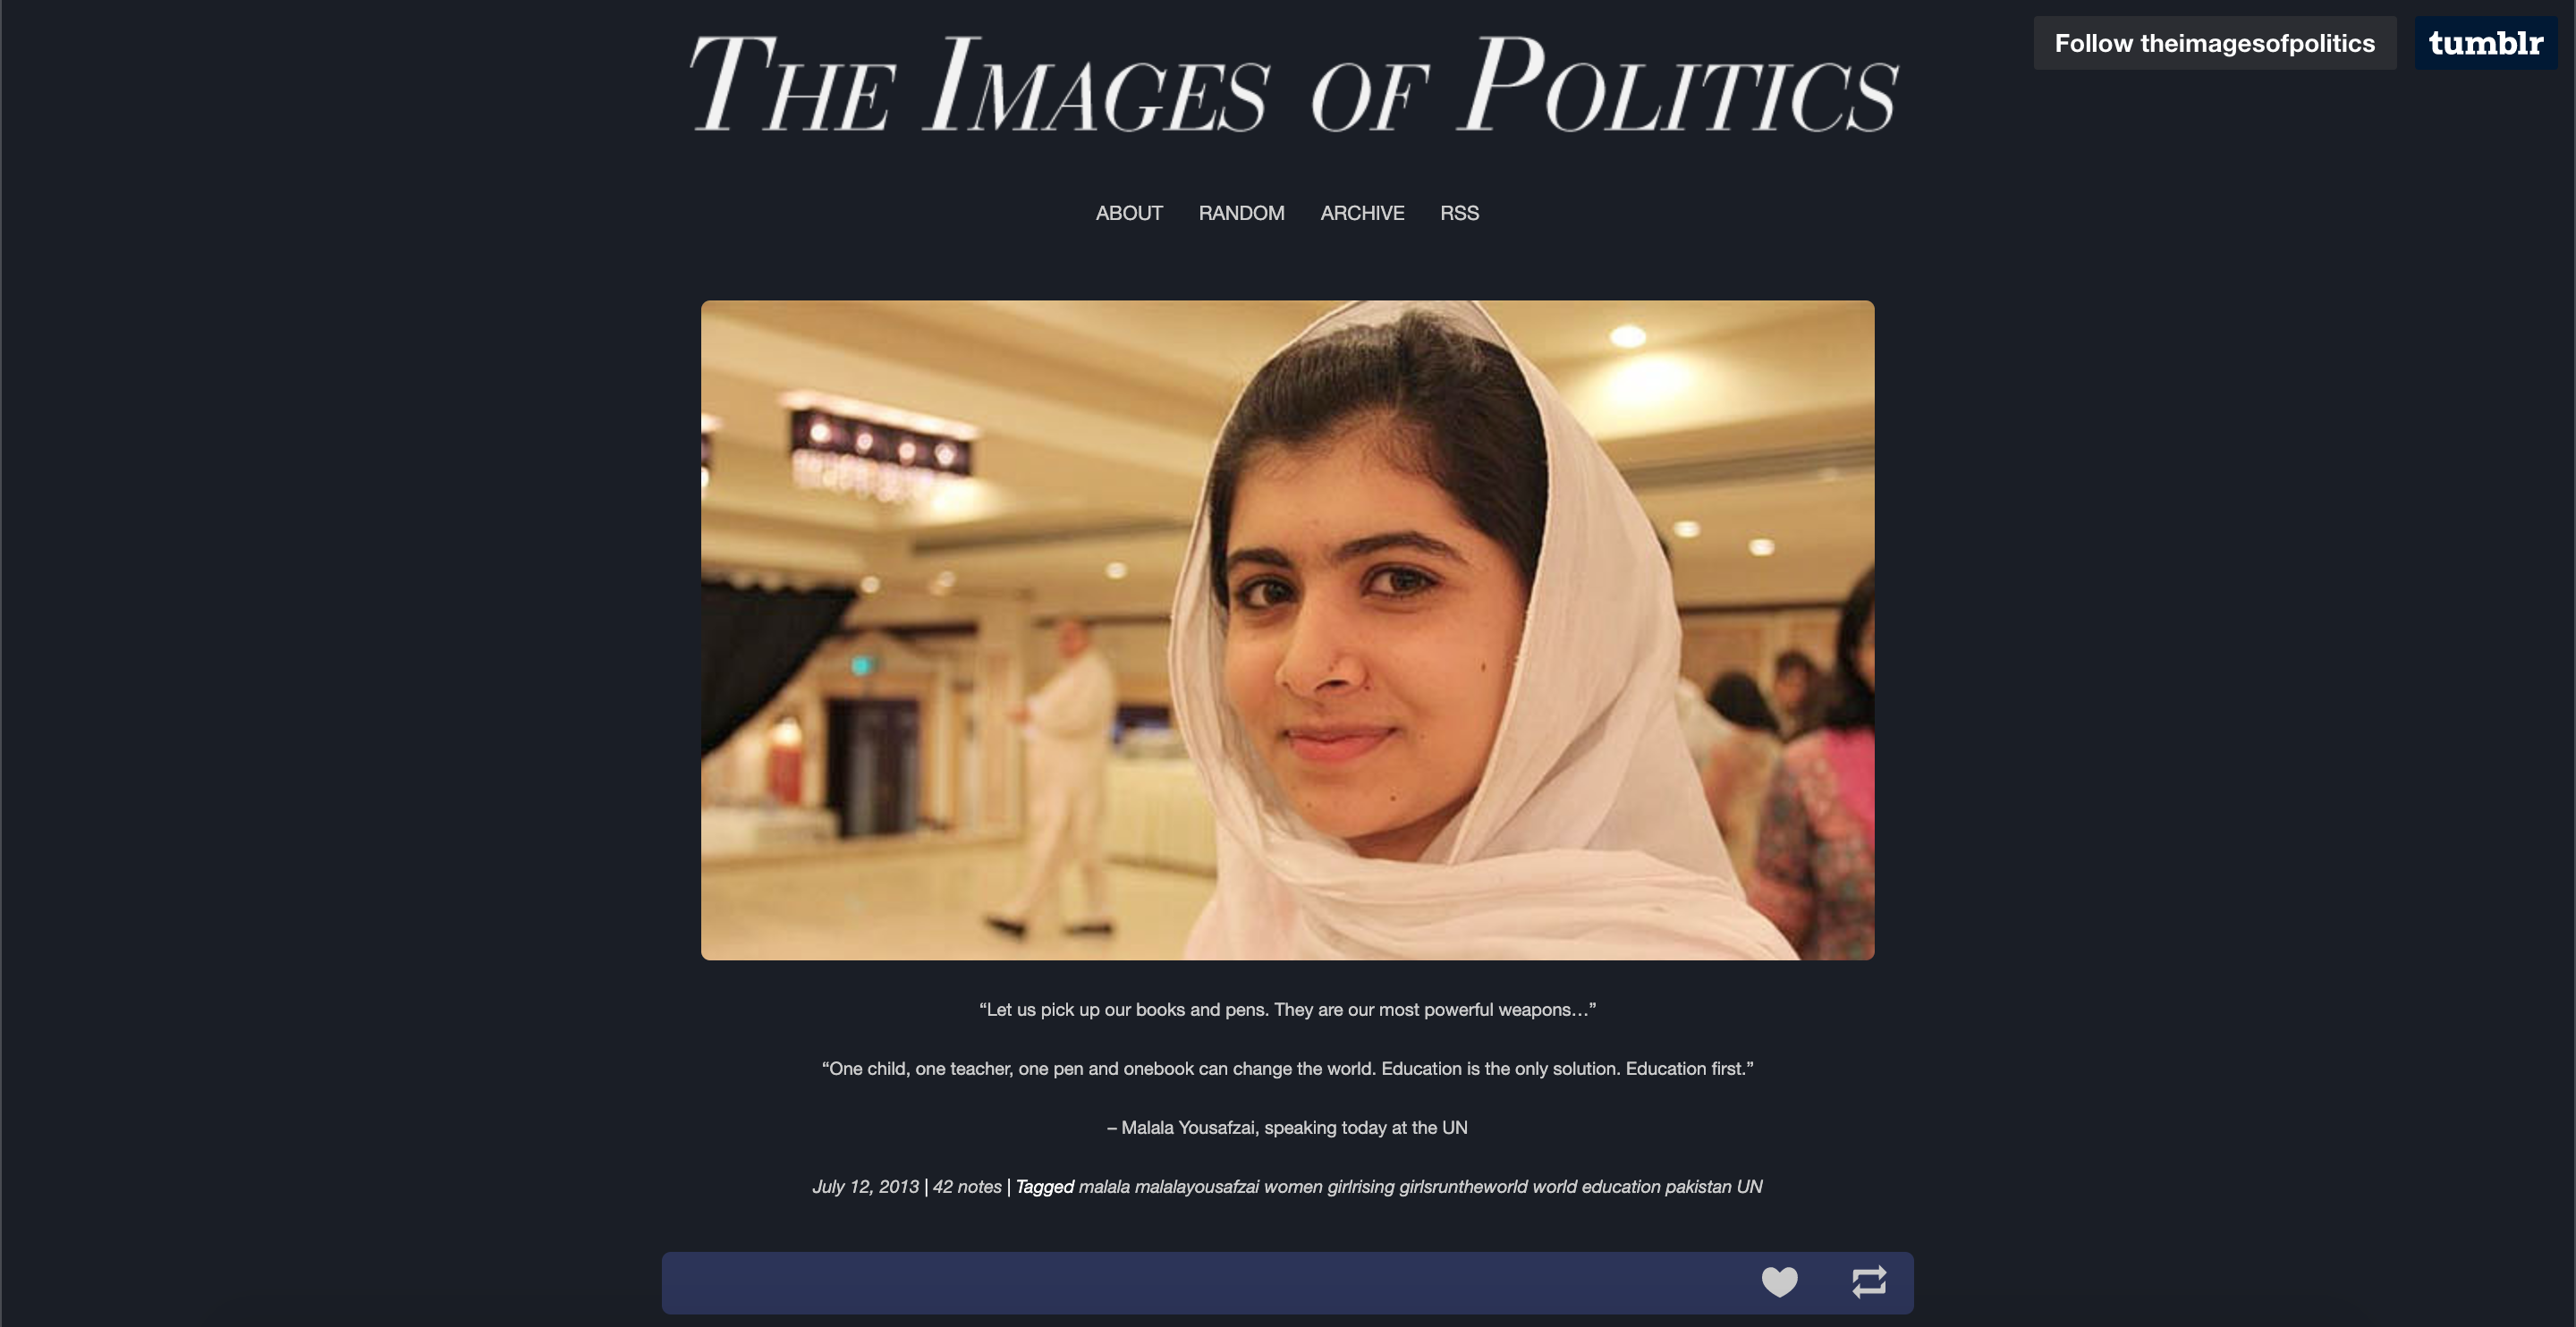 the images of politics page 3